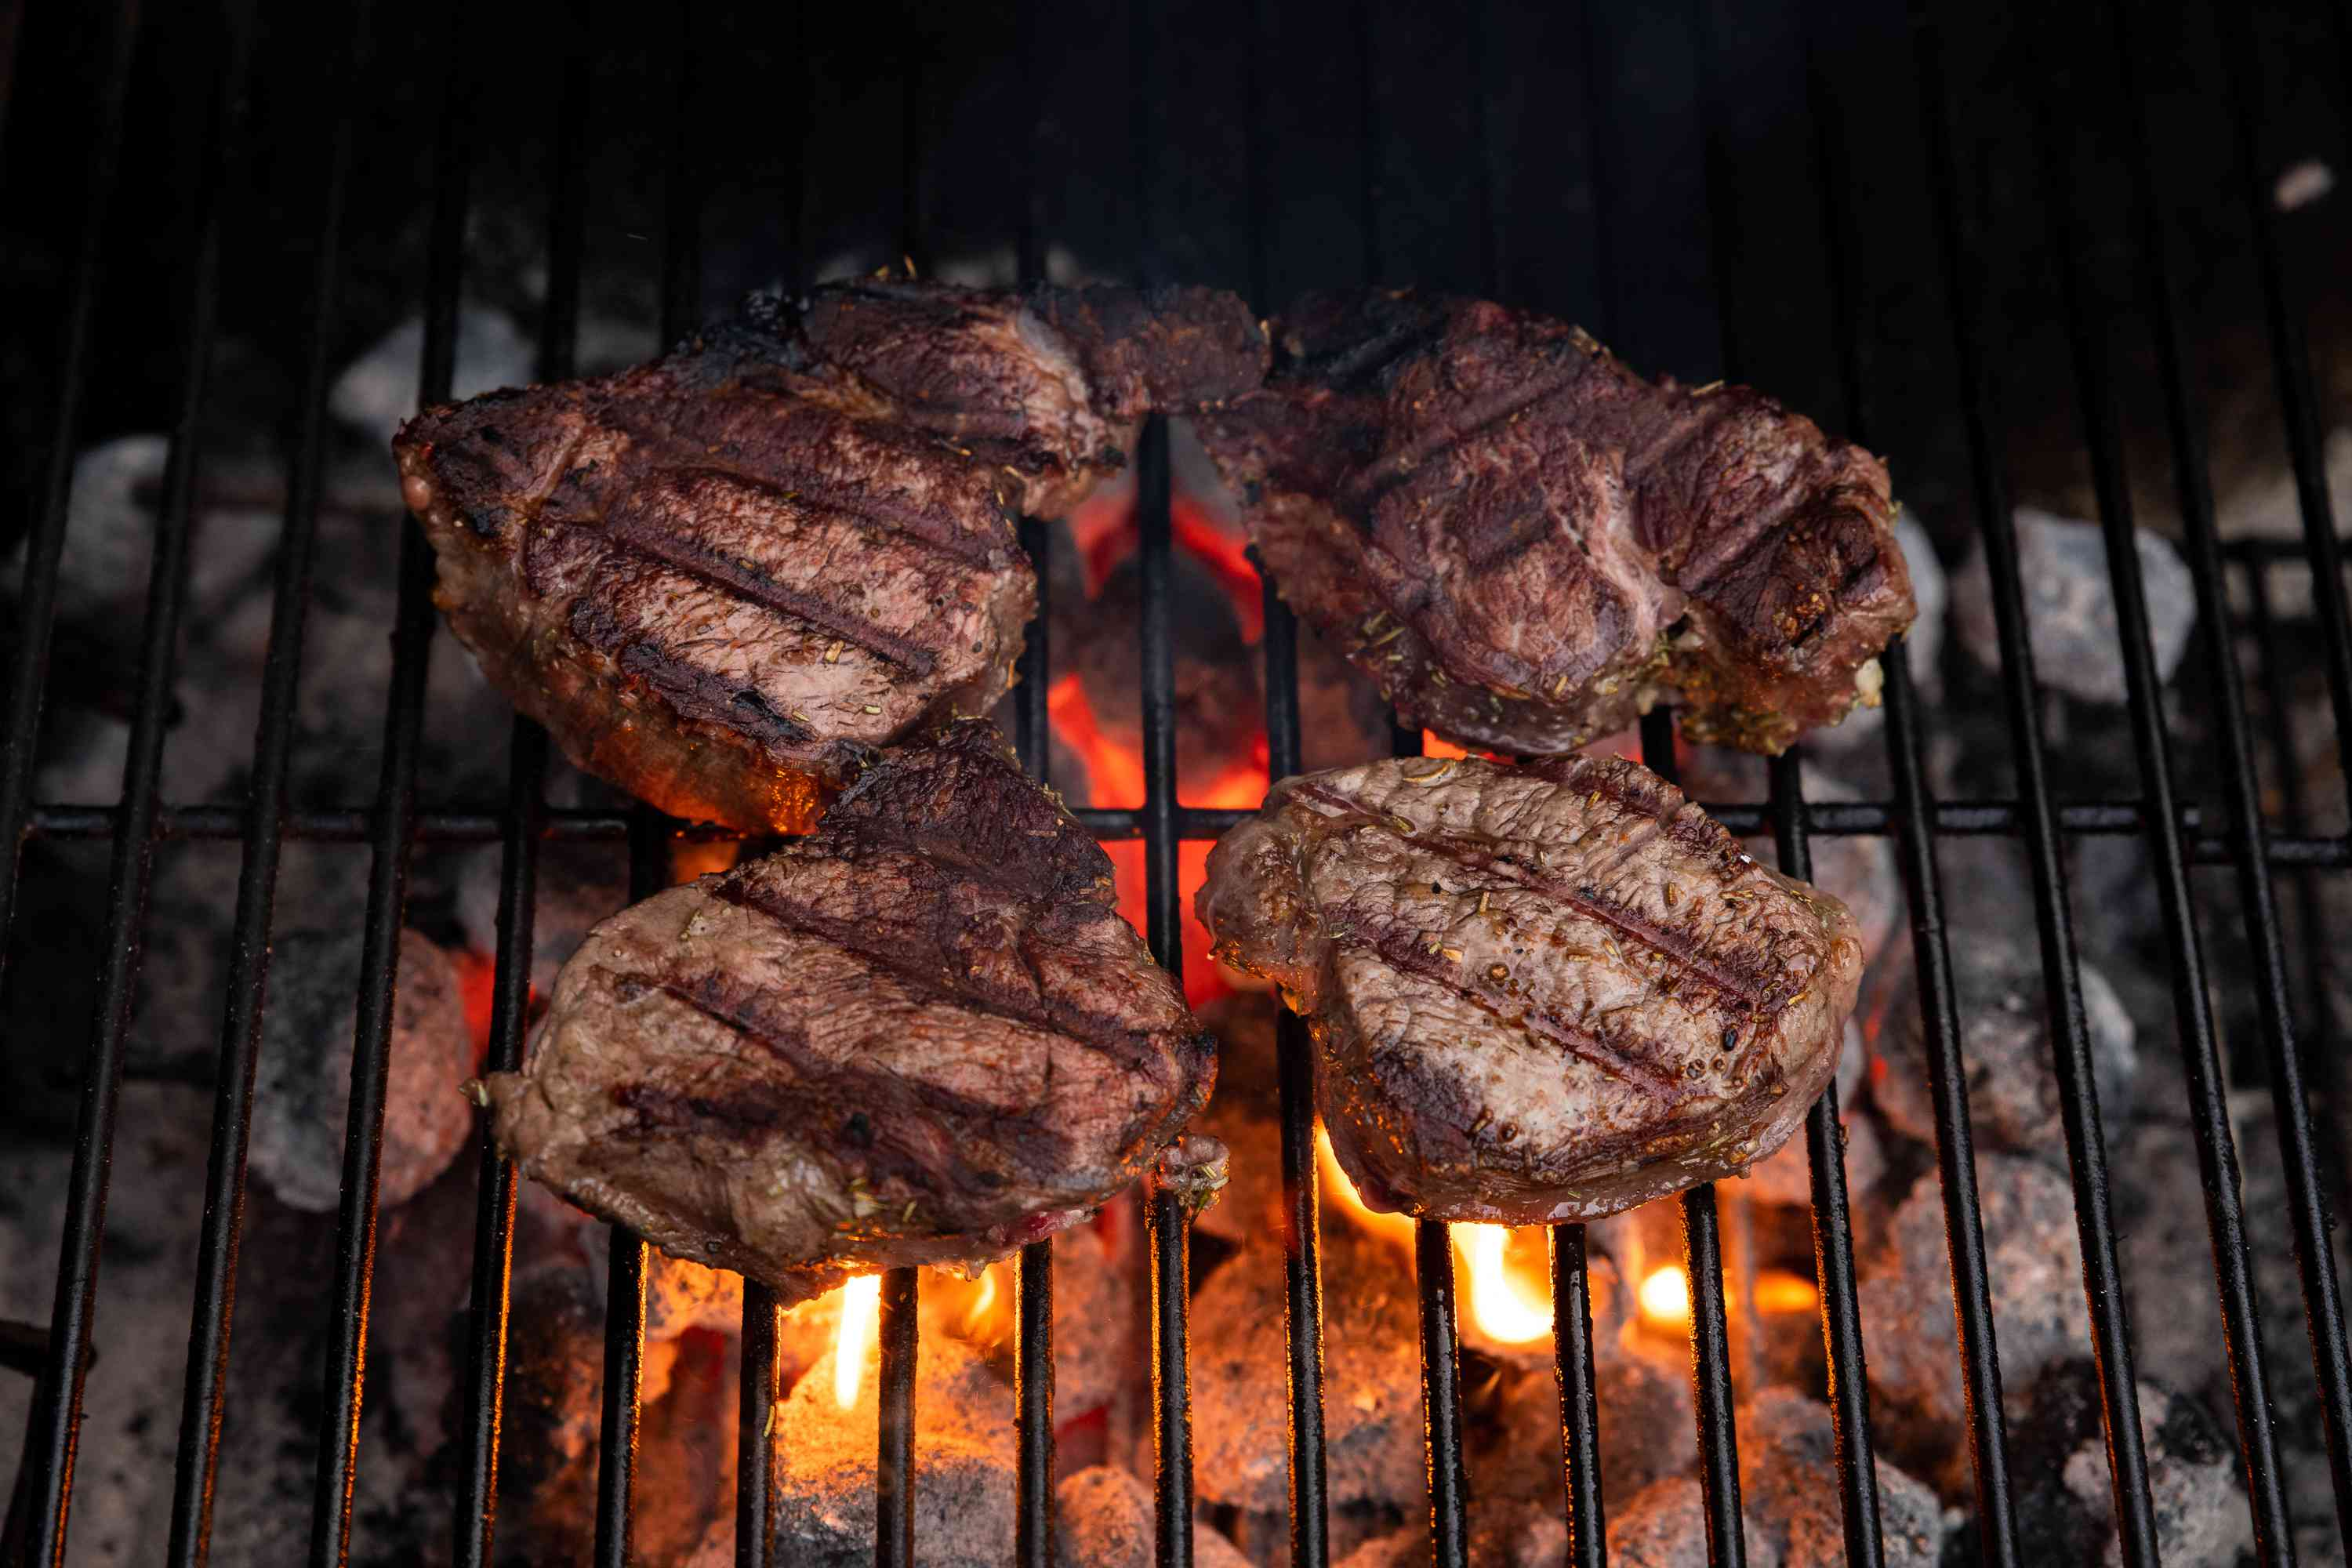 Place the steaks on the grill